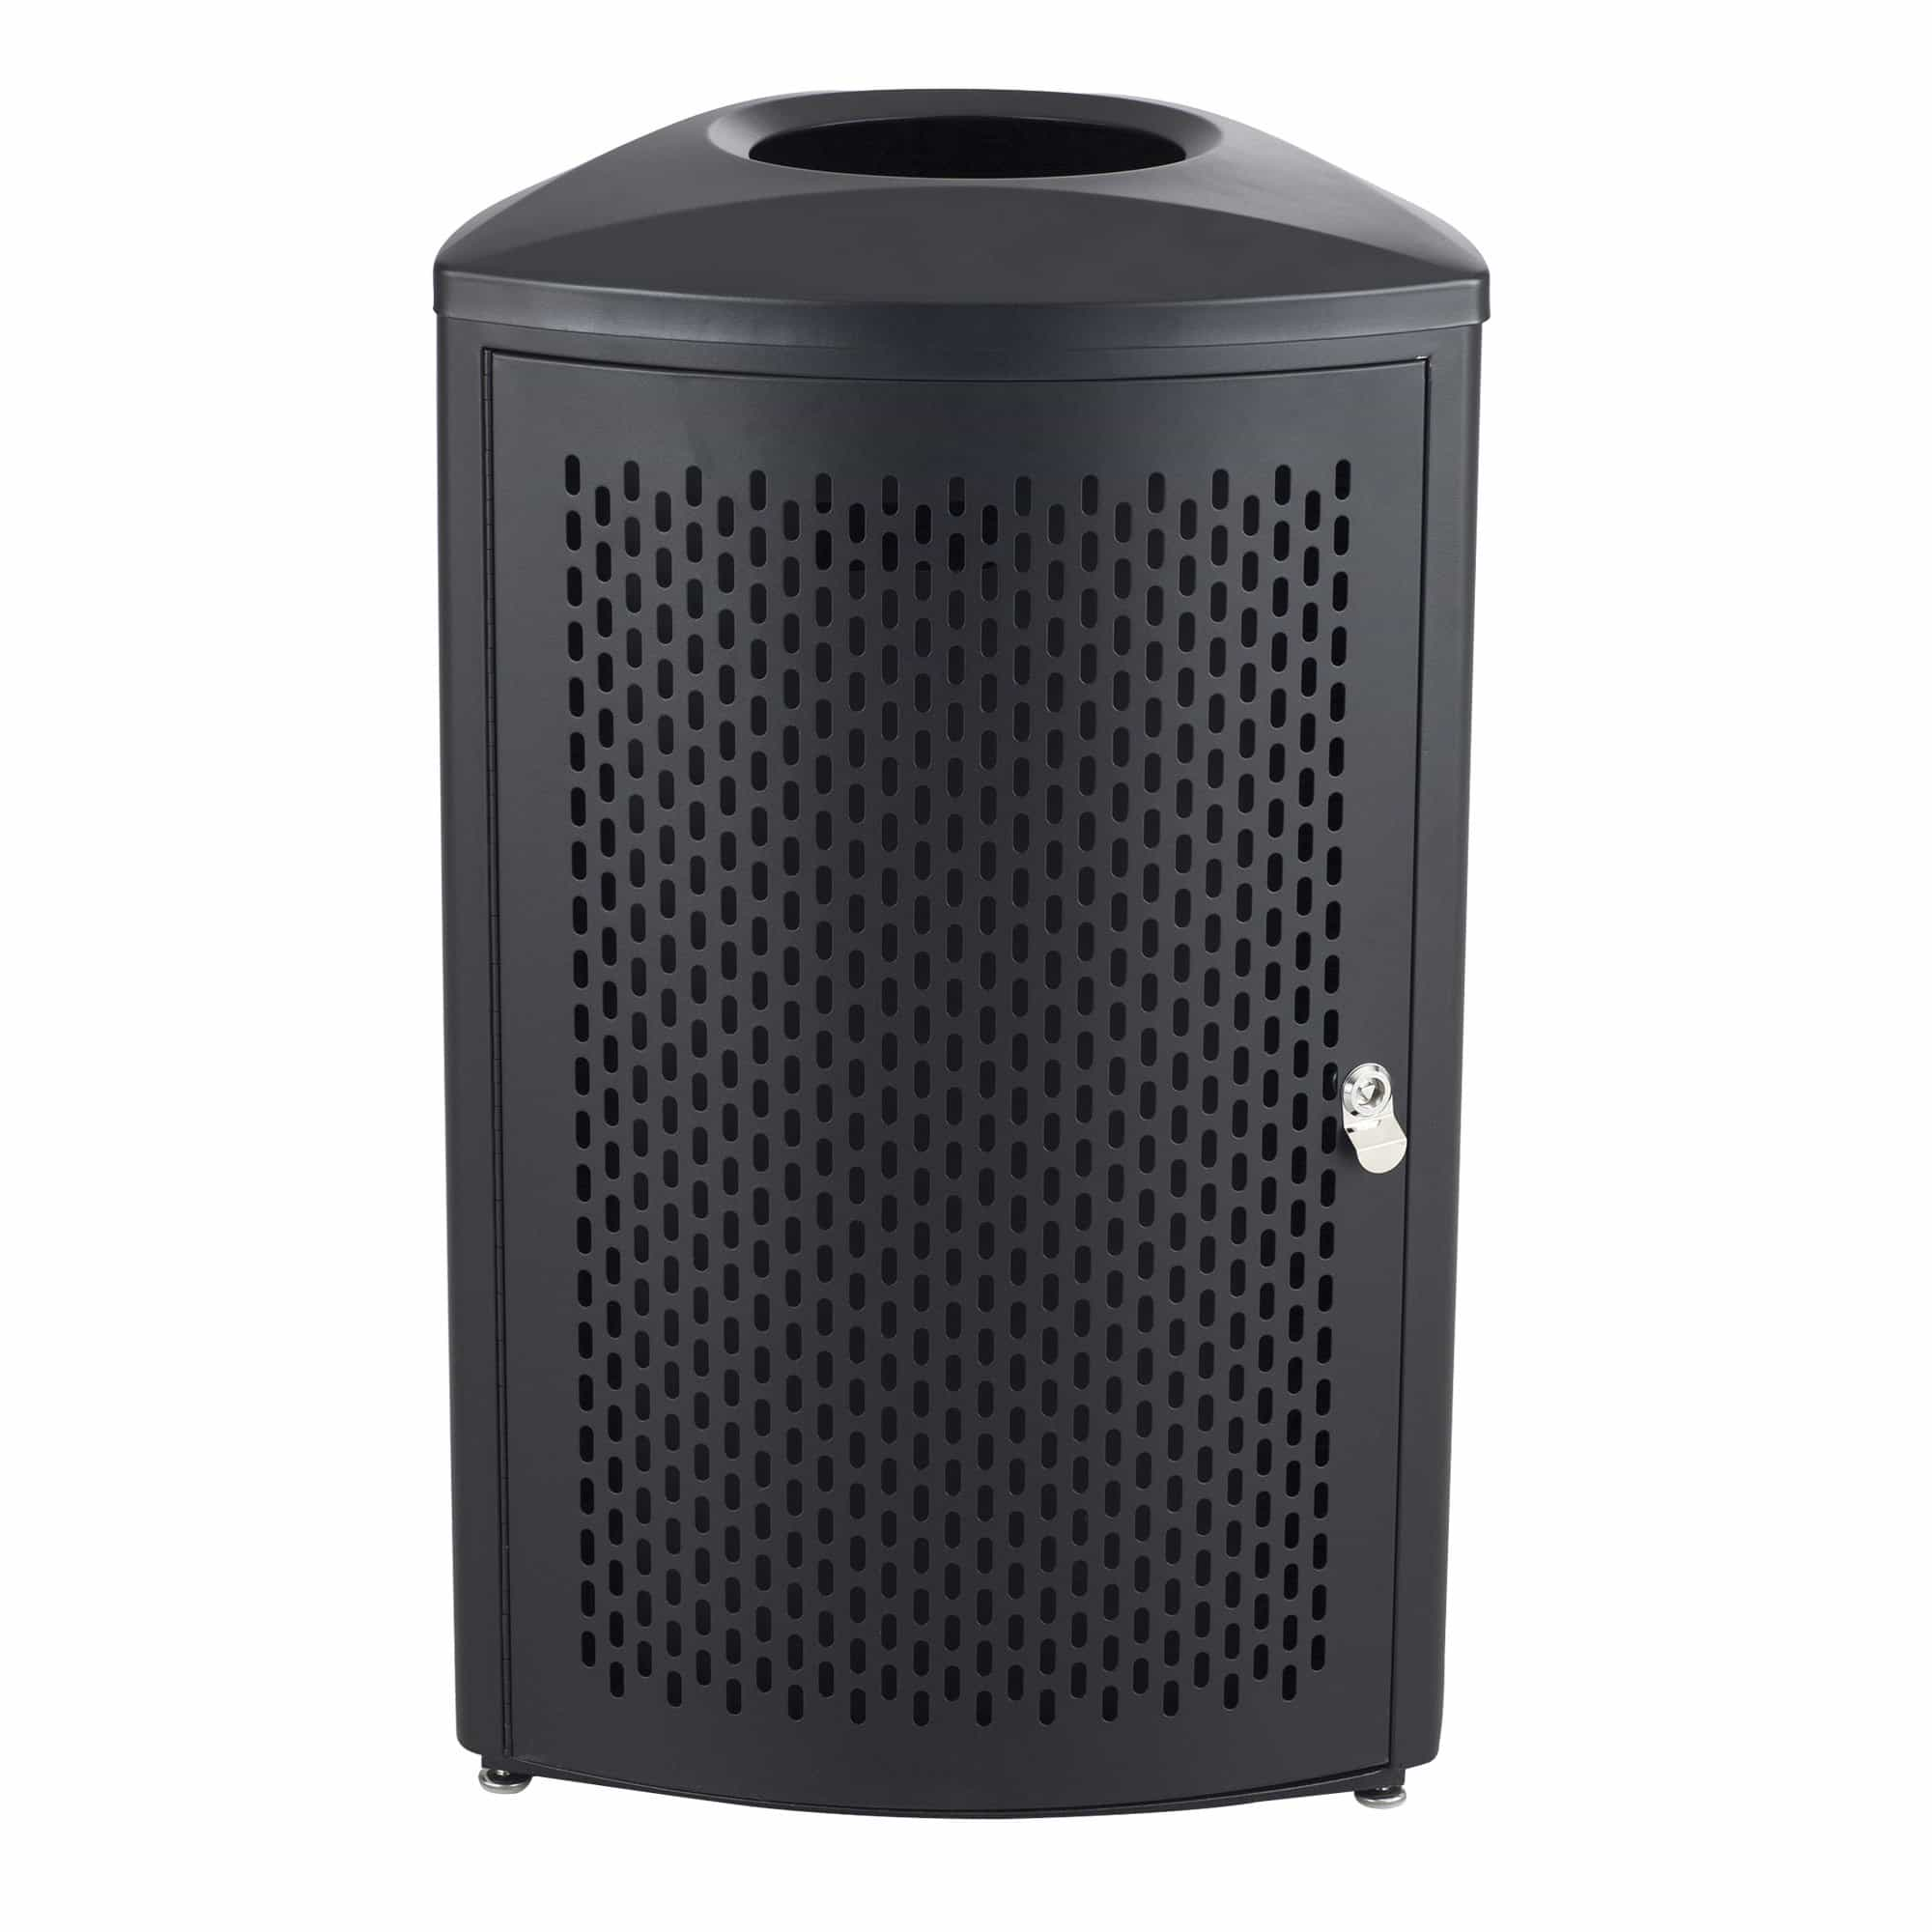 bedinhome - 9960BL Nook™ Indoor Use Triangular Design Black Durable Steel Frame 20 Gallon Capacity Waste Receptacle - Safco - Indoor Waste Receptacle